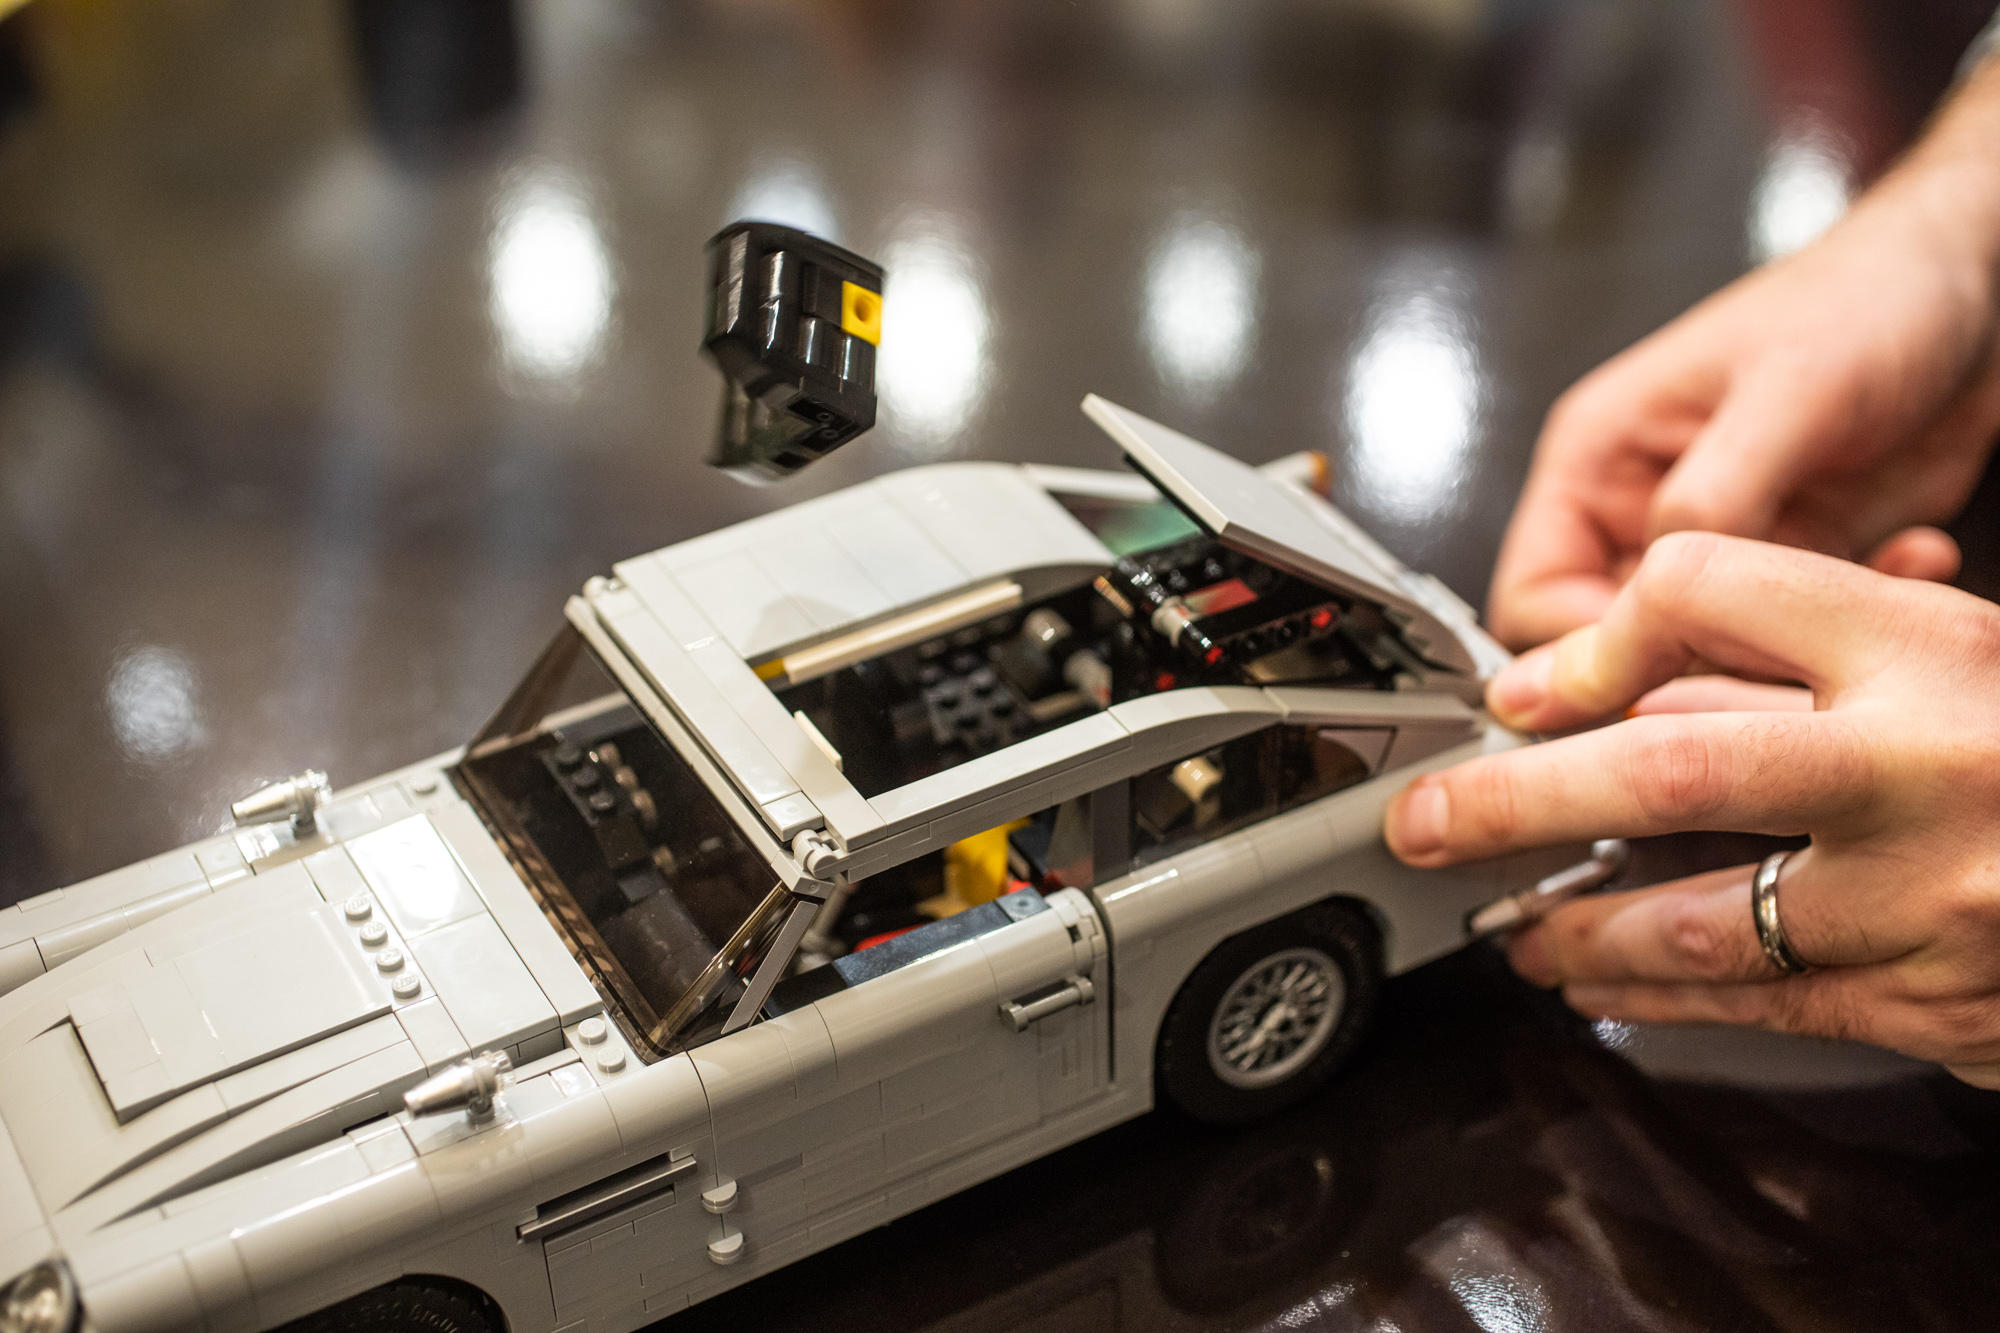 Lego James Bond Aston Martin Db5 Thrills With Working Ejector Seat Cnet